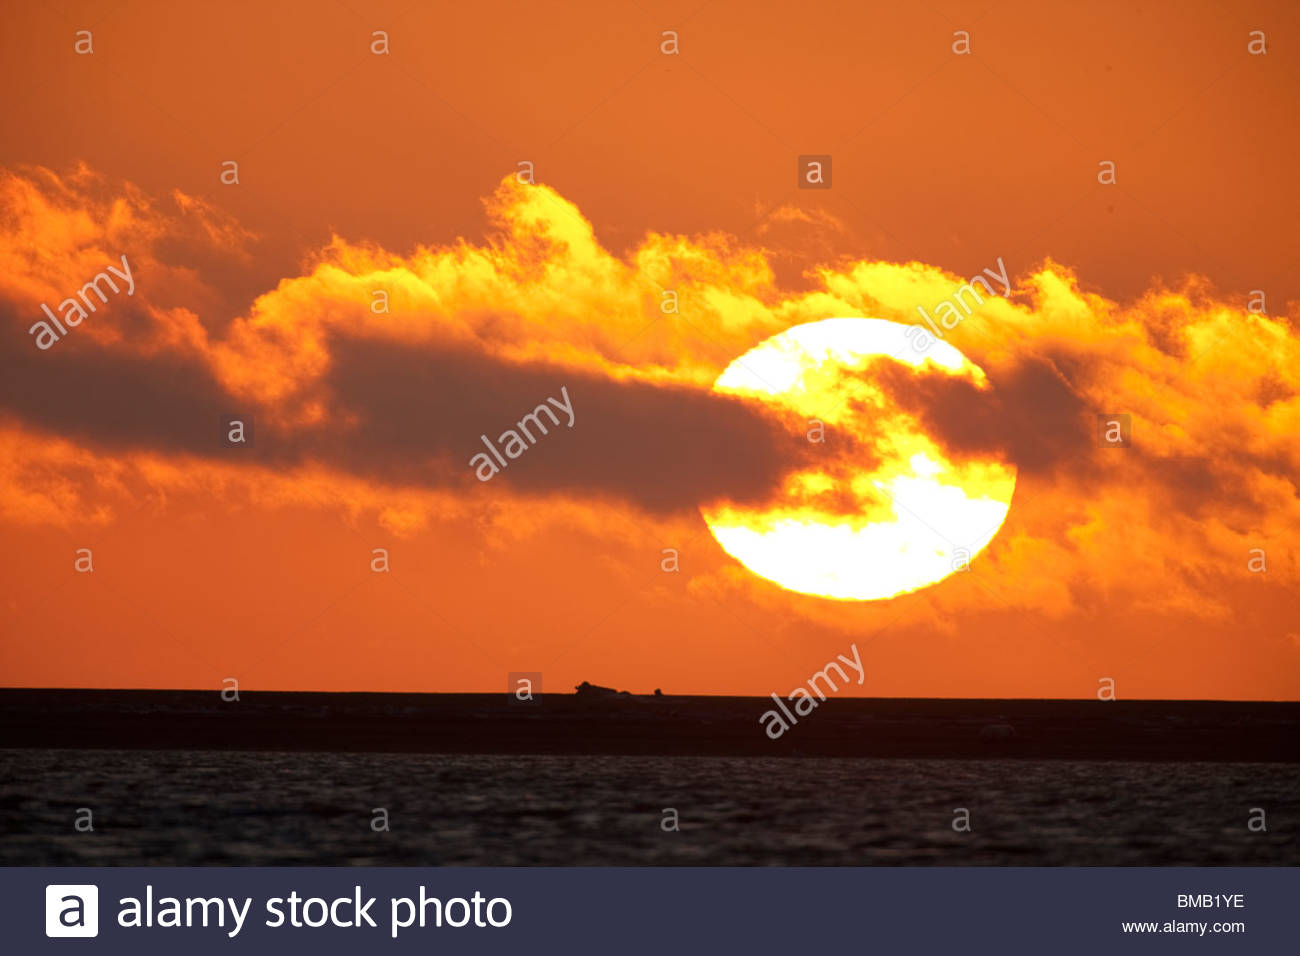 The sun rises in a blaze of color over the Beaufort Sea off the coast of ANWR - Stock Image